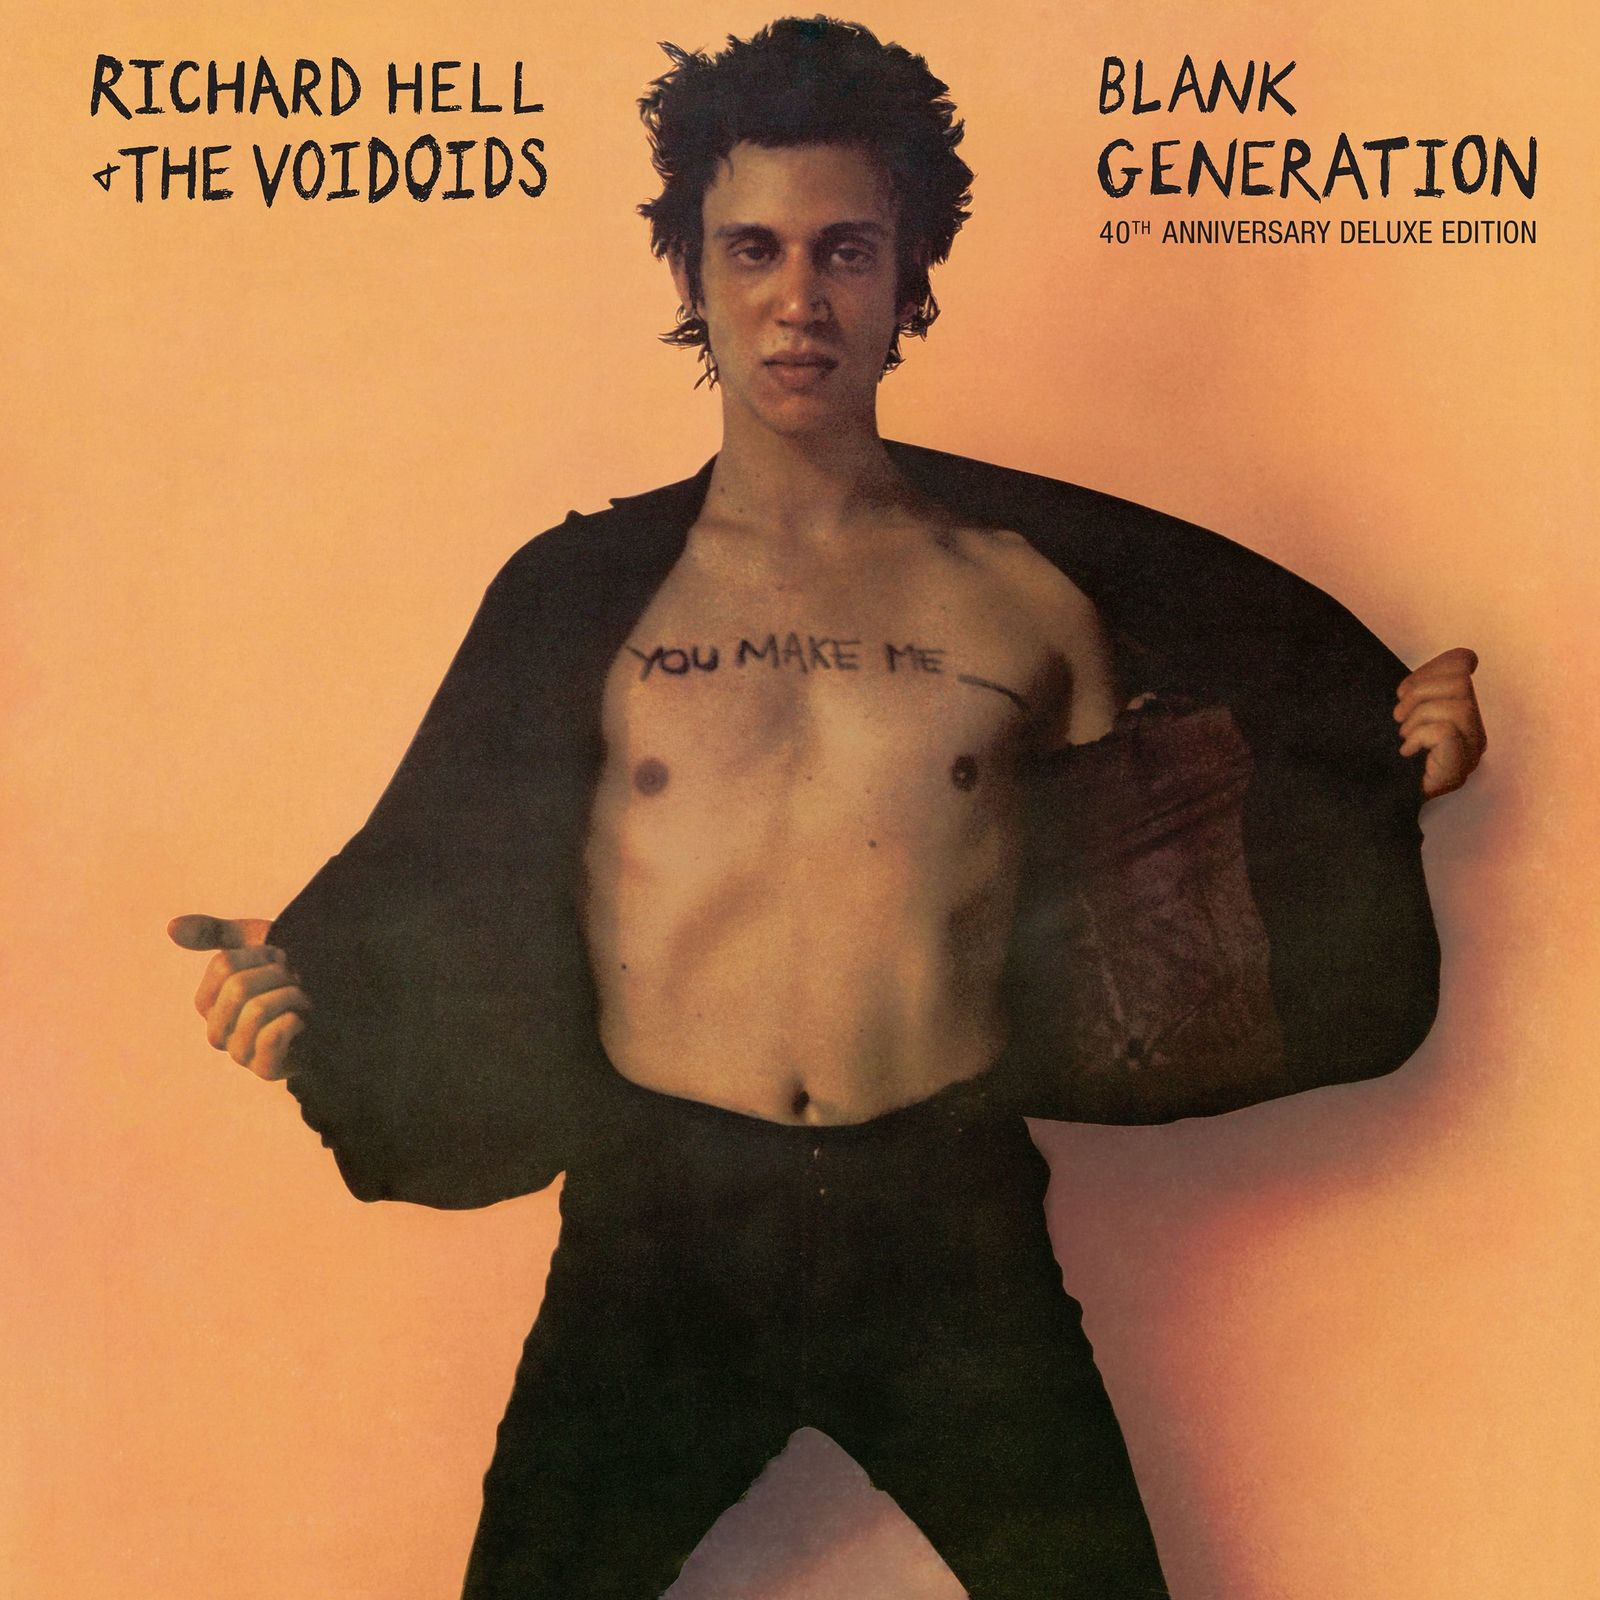 Blank Generation: 40th Anniversary Deluxe Edition (2CD) by Richard Hell & the Voidoids image